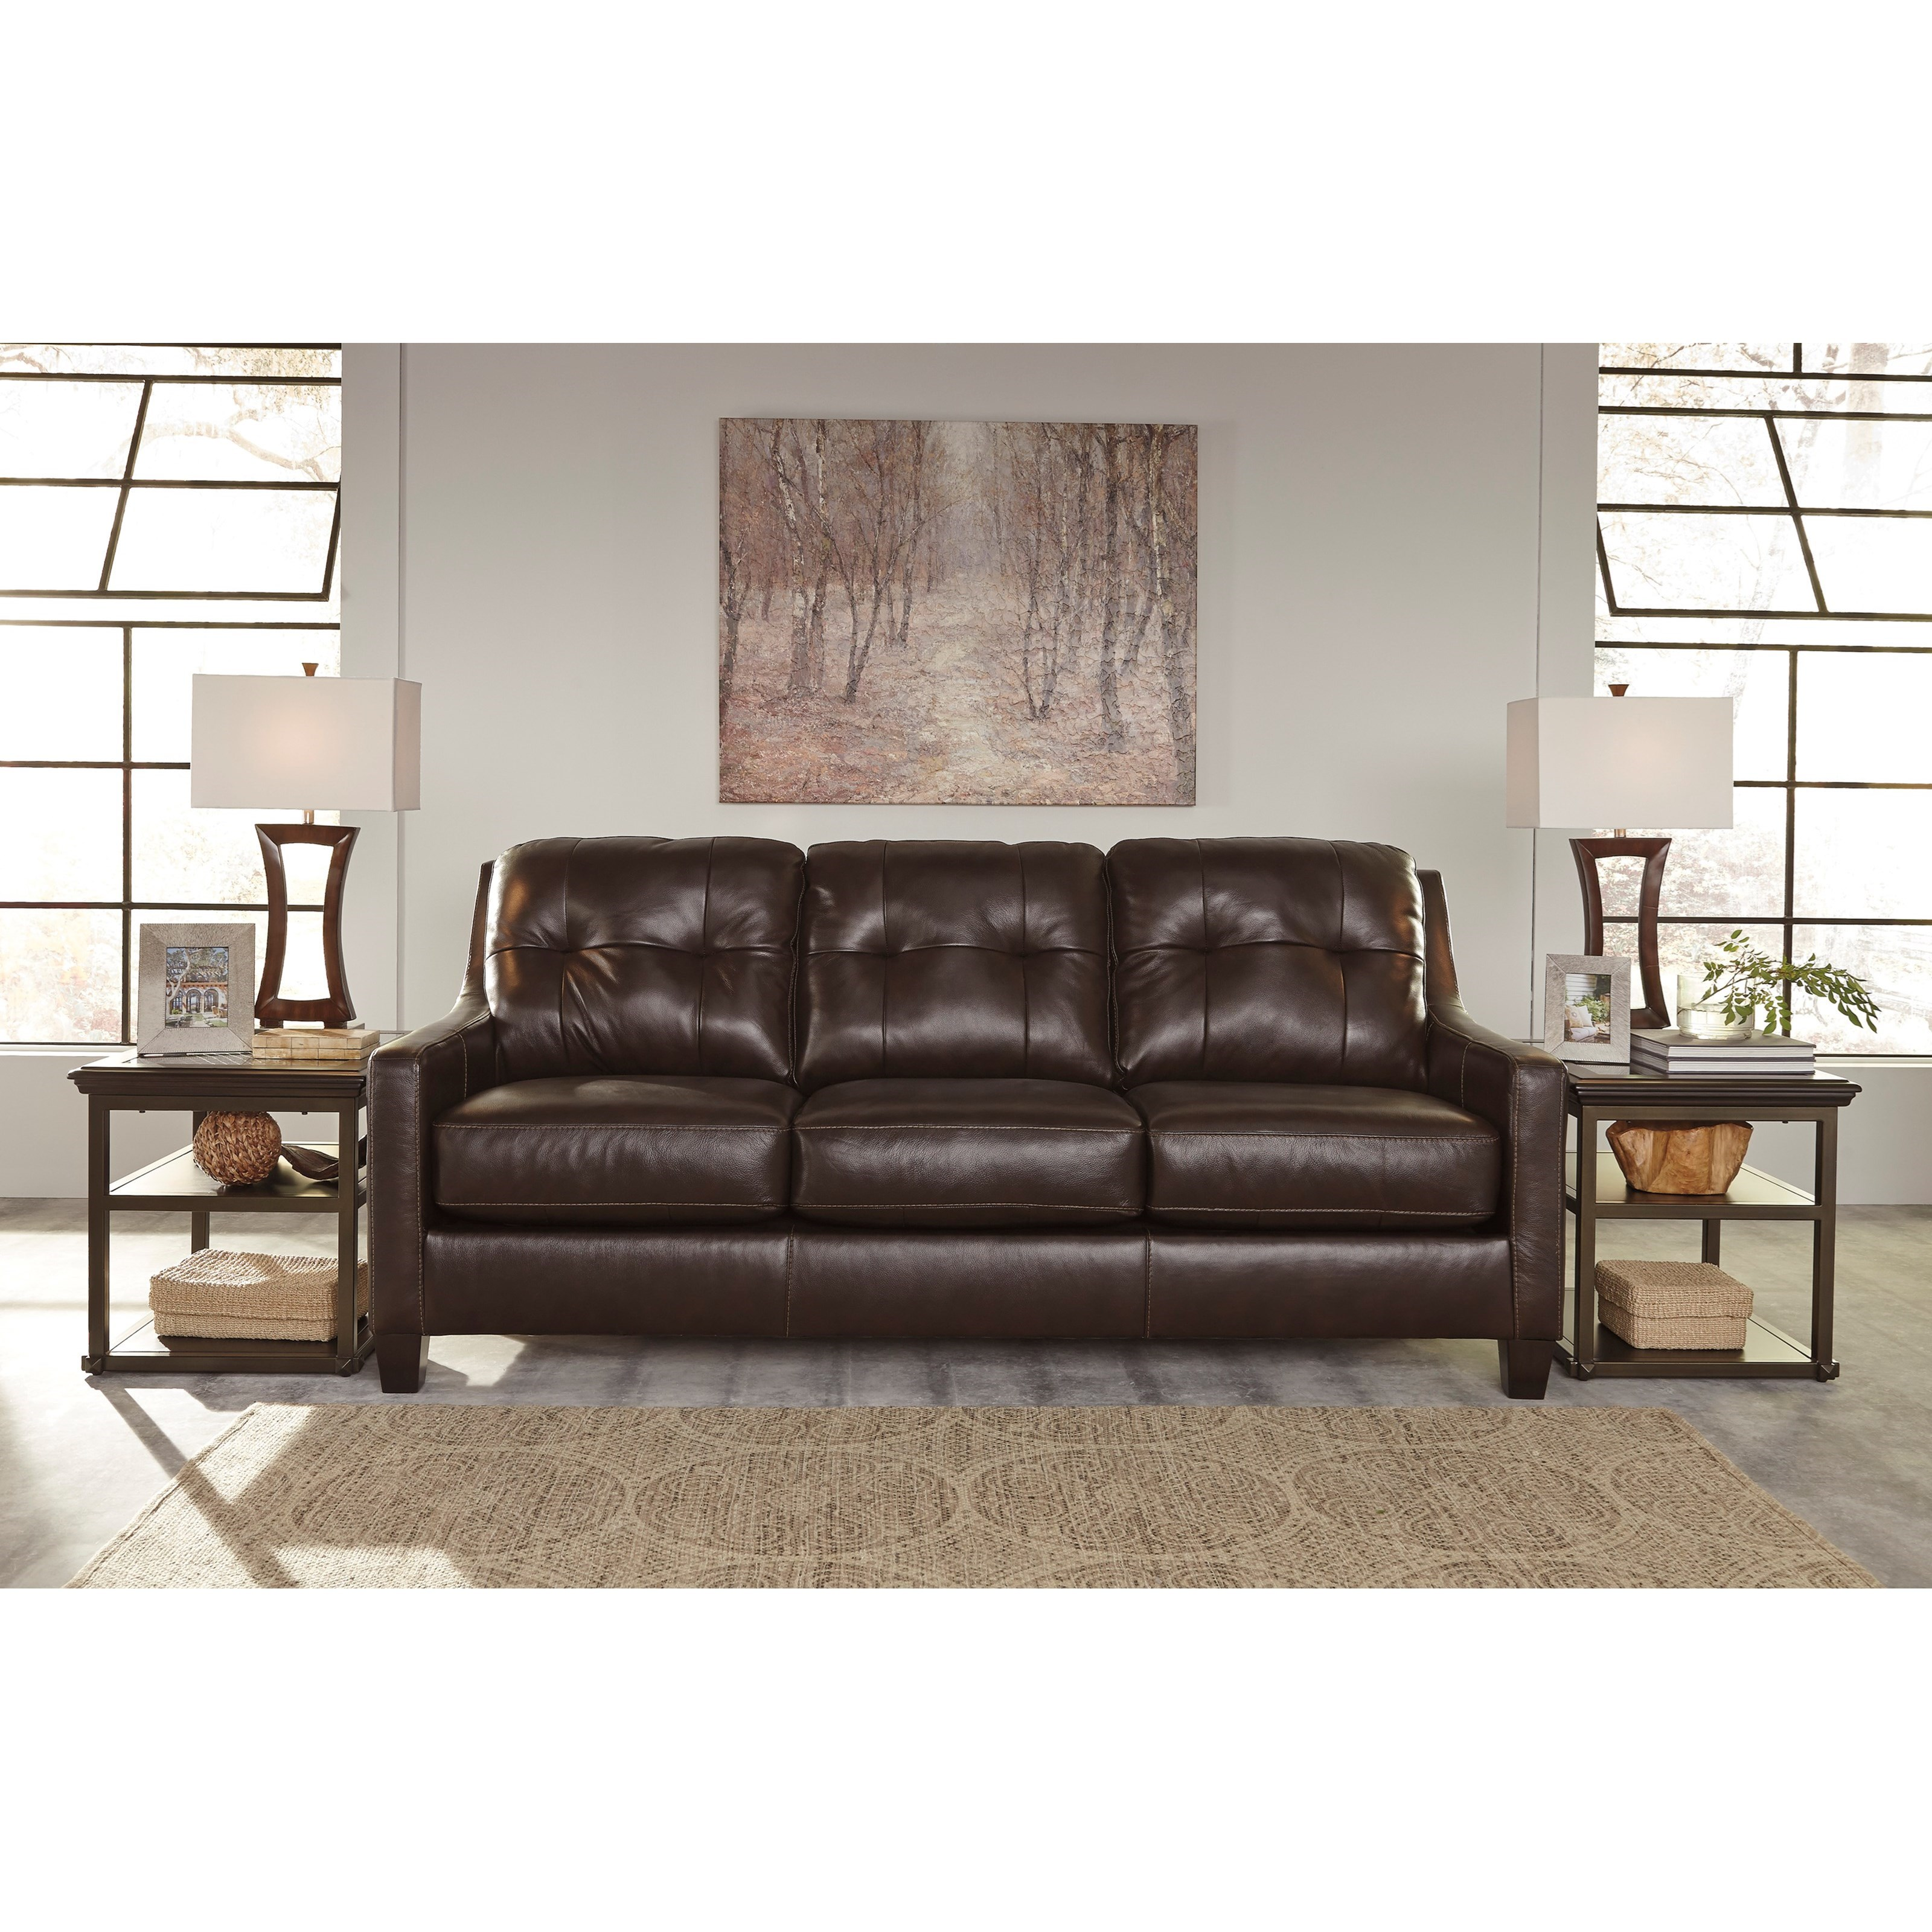 Contemporary Leather Match Sofa with Tufted Back & Track Arms by